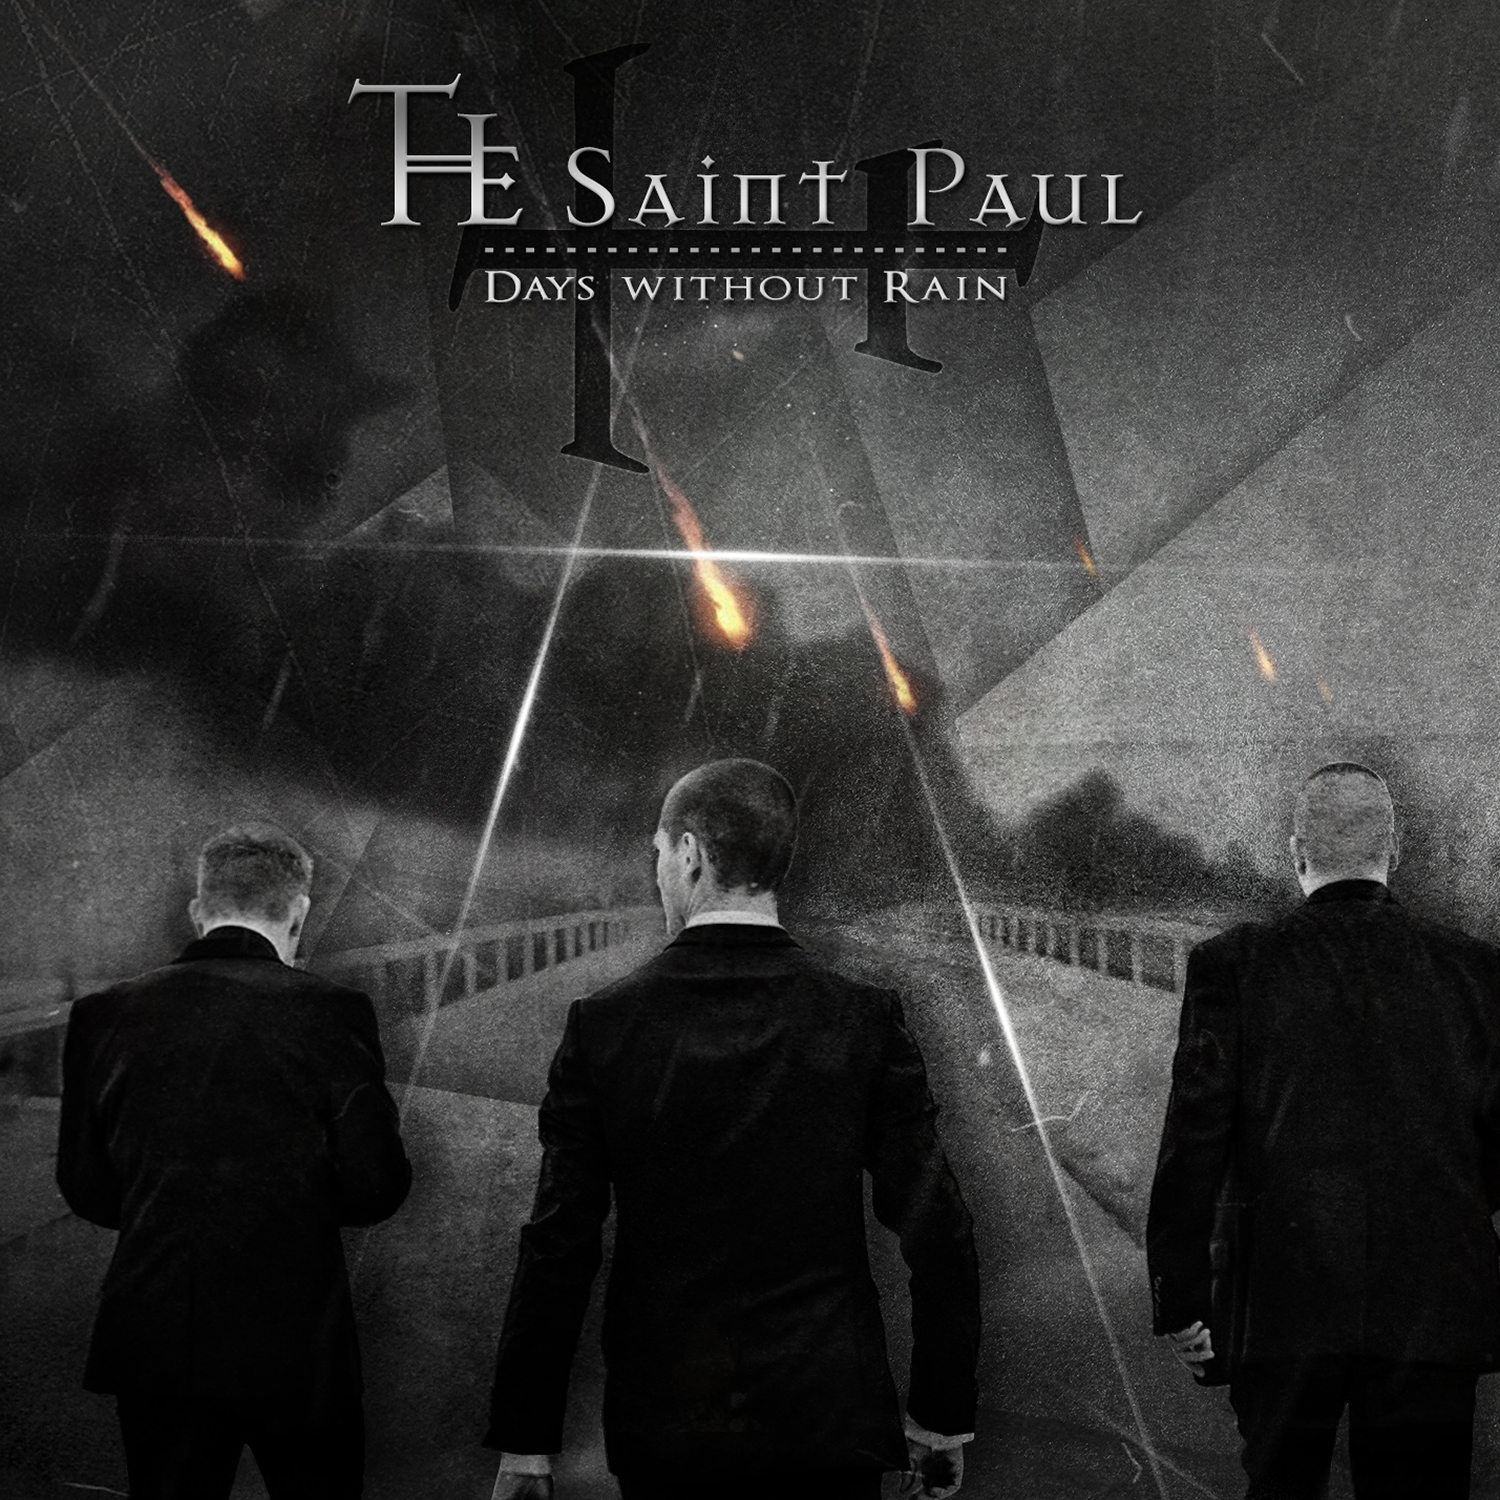 The Saint Paul - Days Without Rain